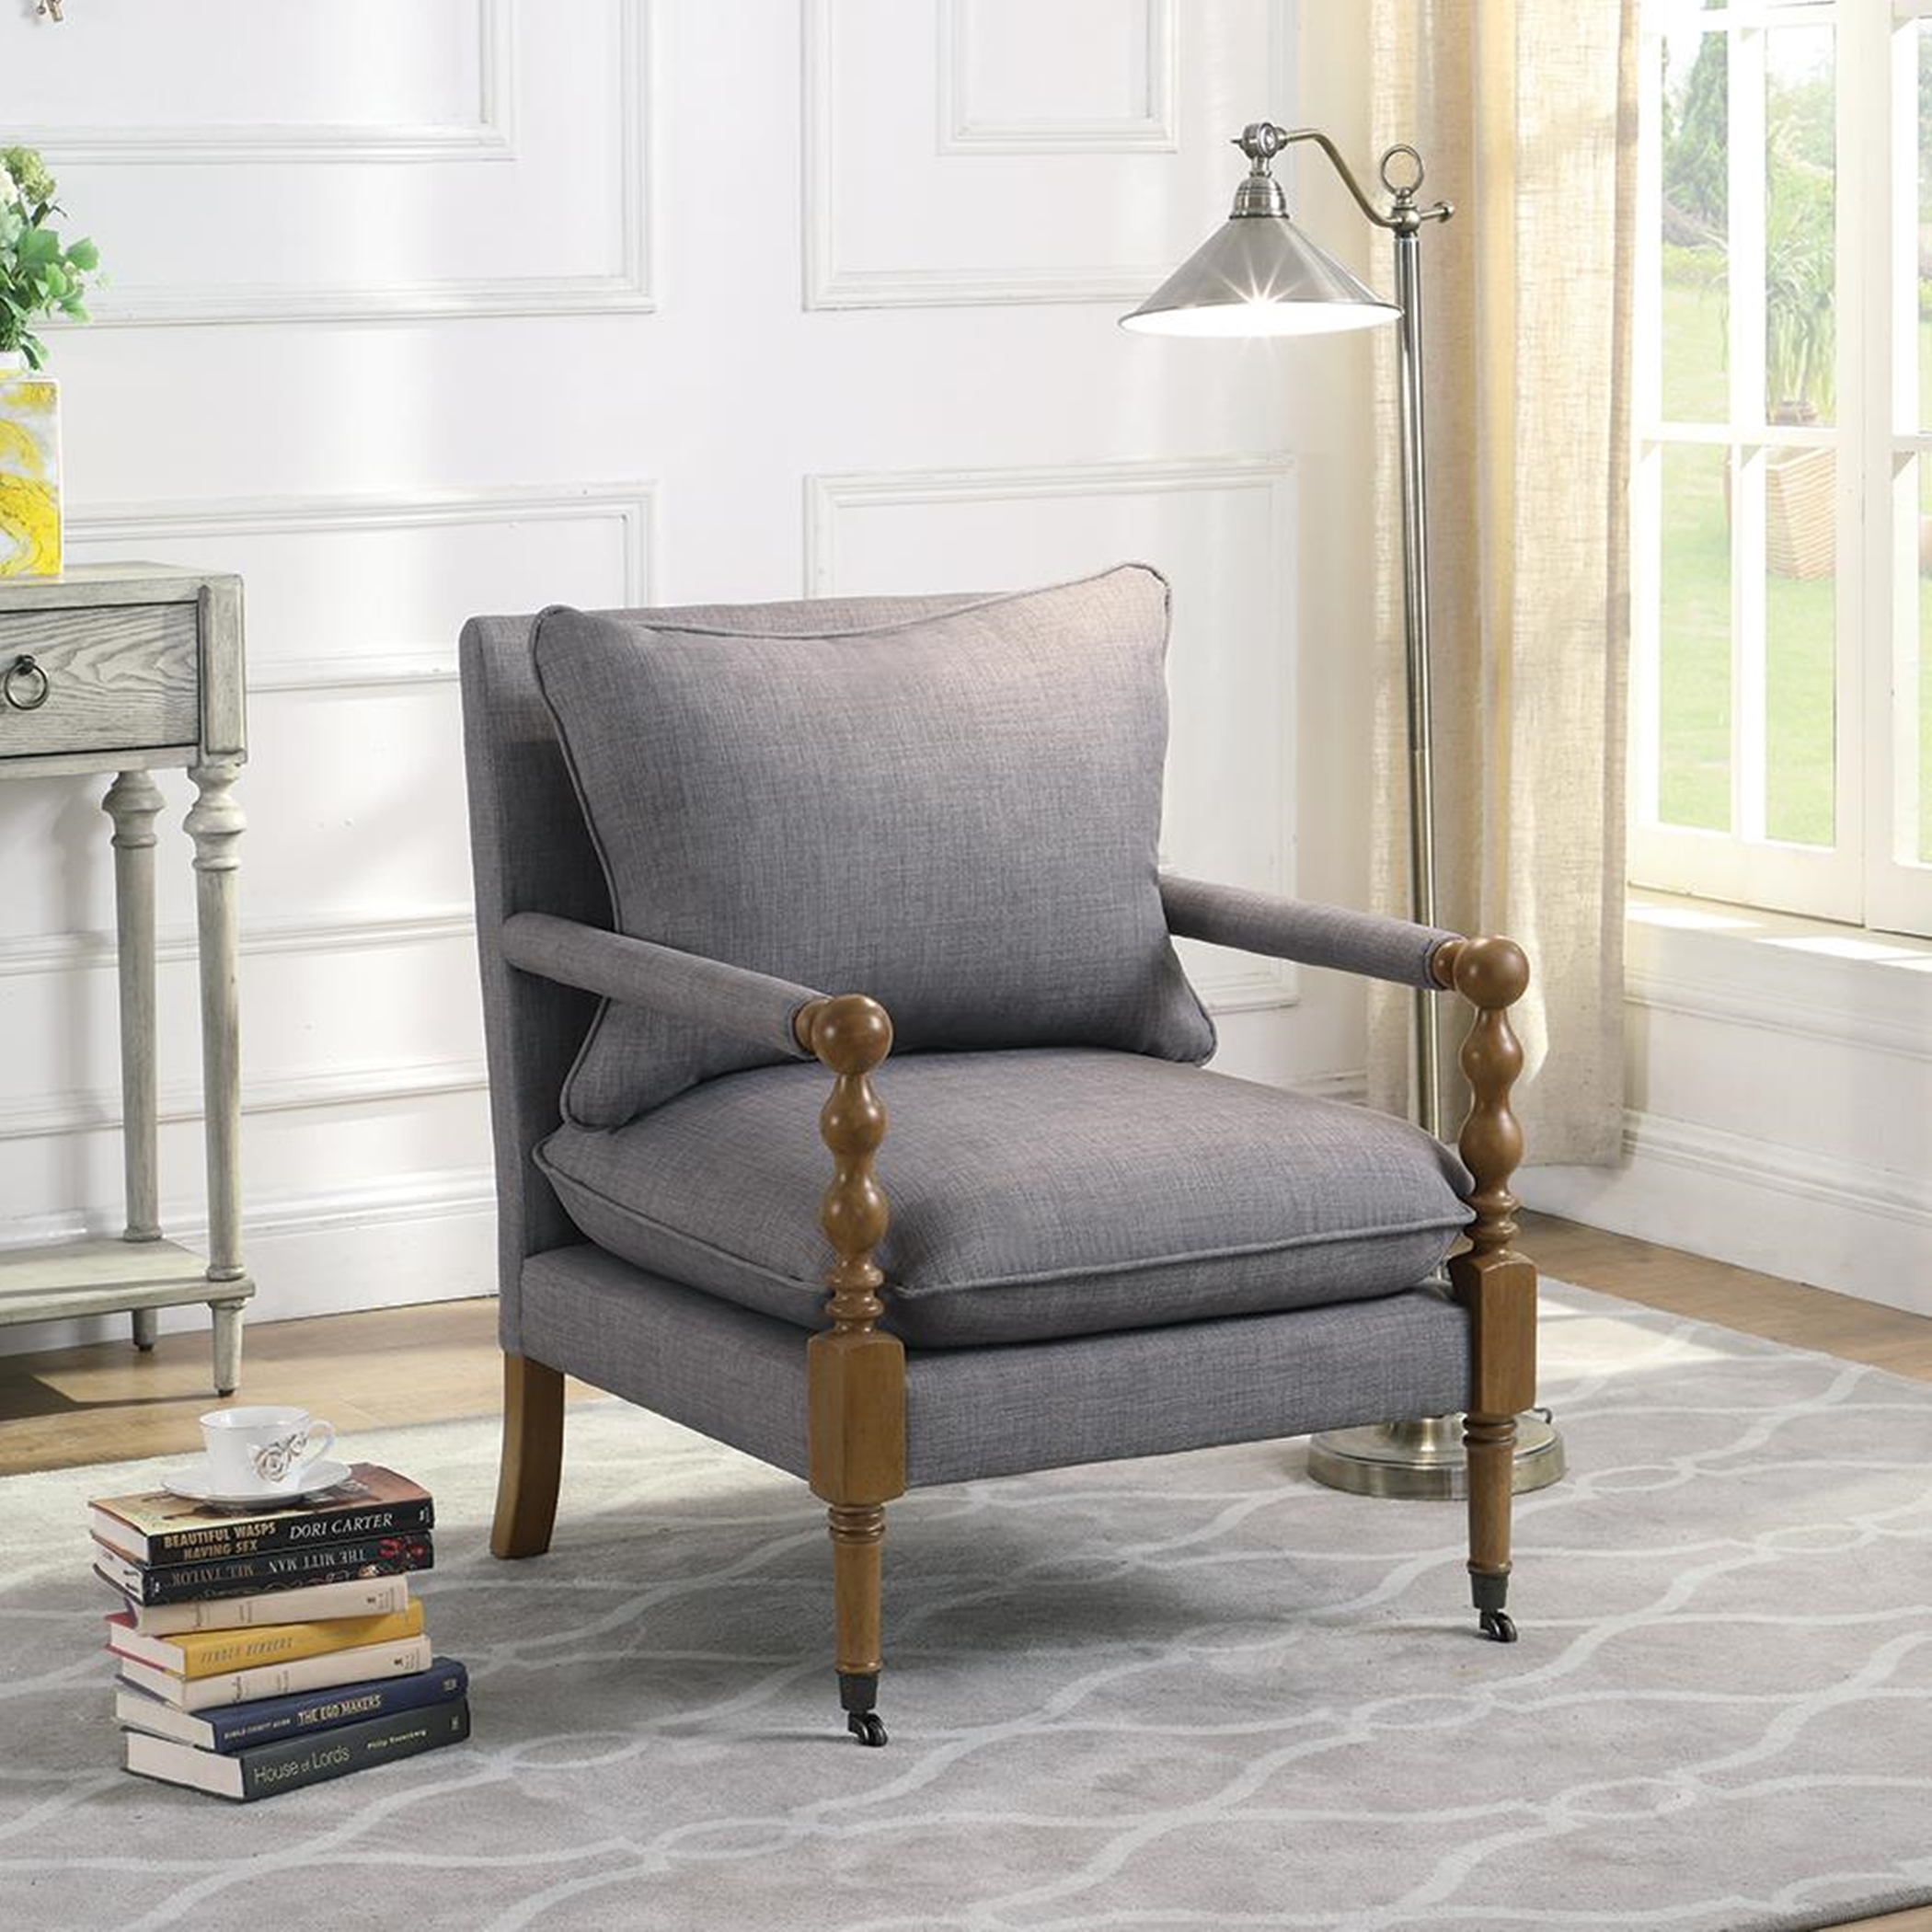 903059 - Accent Chair